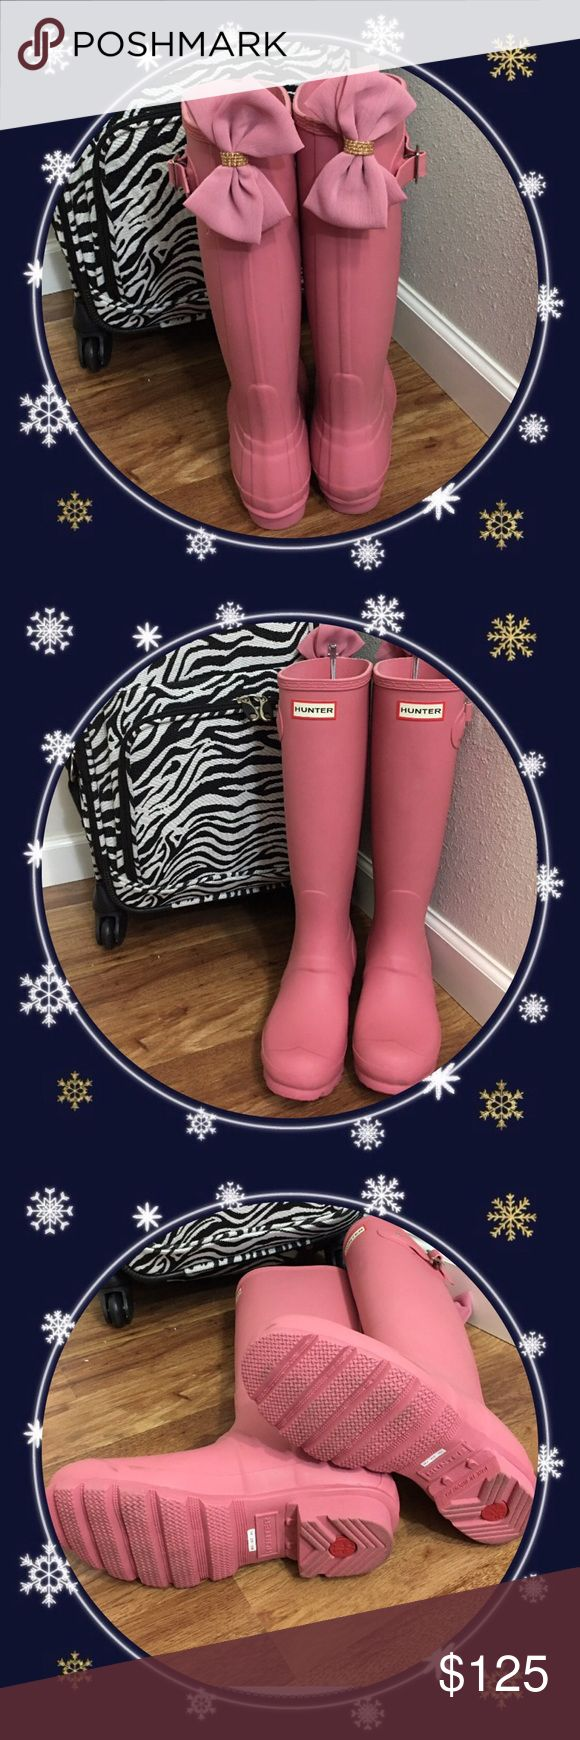 Rare Pink Hunter boots with bows size 6 Gorgeous pair of matte finish rhondite pink ladies tall Wellie Hunter rain boots in size 6. Got these from Nordstroms for $150 plus tax was $165 and got the bows for additional $20 put me at $185. Worn once for pictures and then put away. This is the prettiest blush pink to go with soft neutral tones. This romantic rose pink is no longer available in stores but you can have mine including hard to find matching bows!! Price is final markdown; no further…